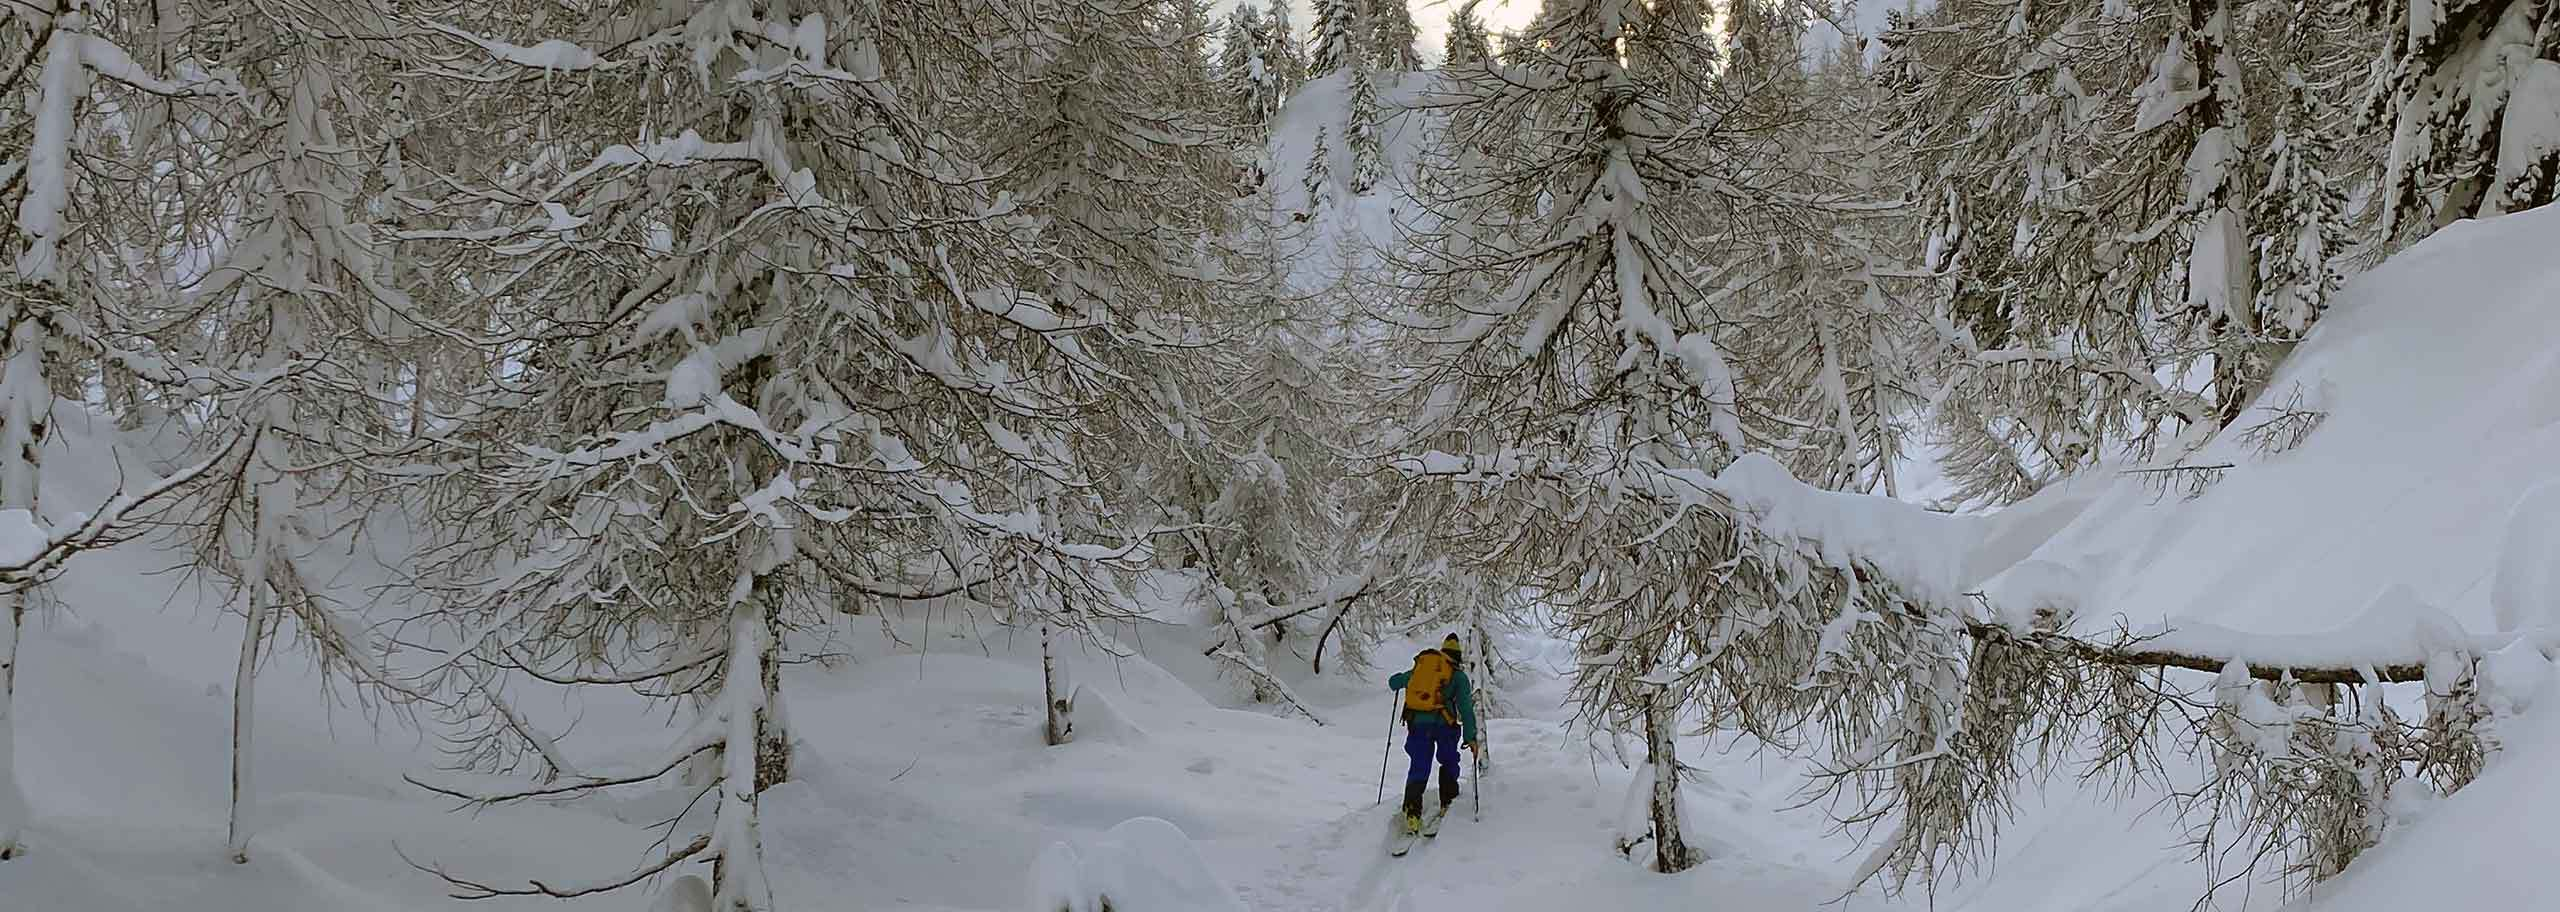 Ski Mountaineering in La Thuile with Mountain Guide